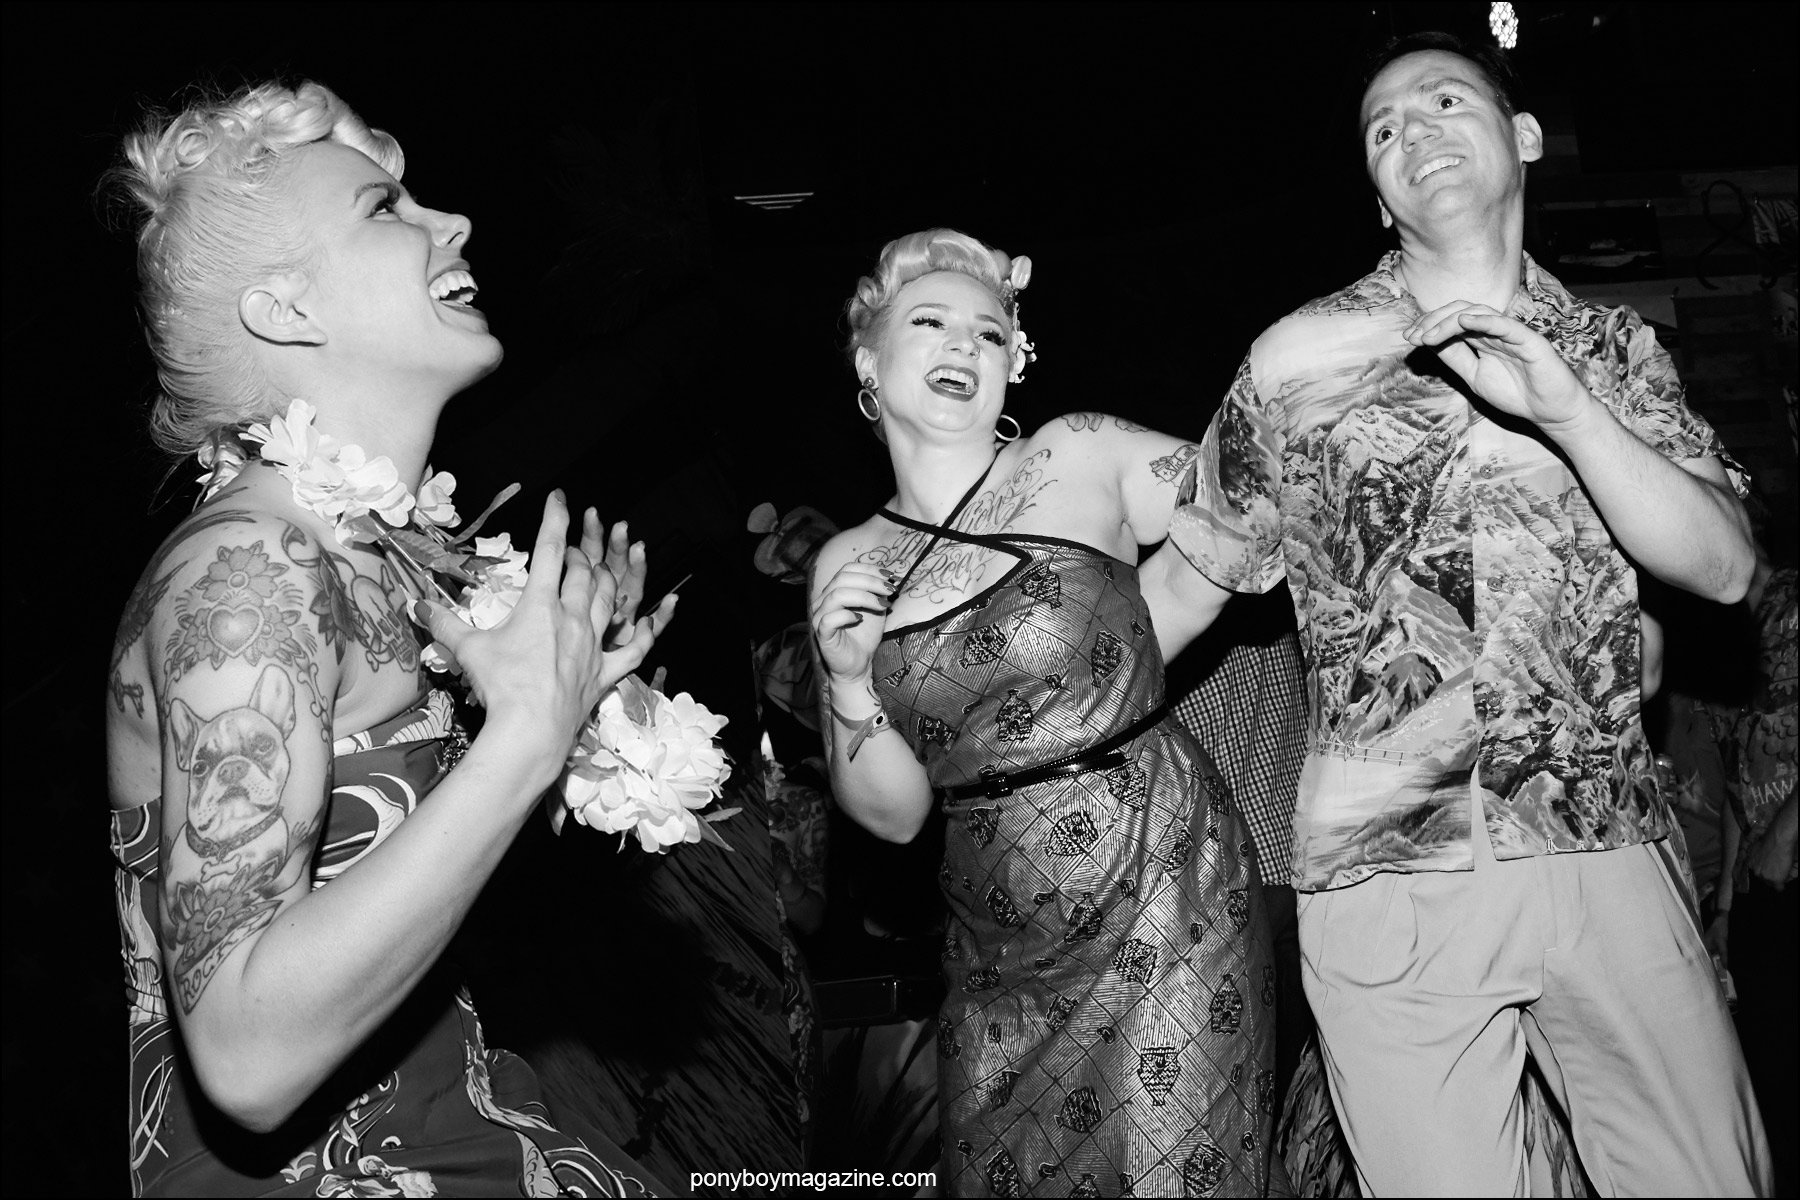 Rockabilly partygoers photographed on the Hula Rock Vol 2 dance floor in New York City. Photographs by Alexander Thompson for Ponyboy magazine NY.